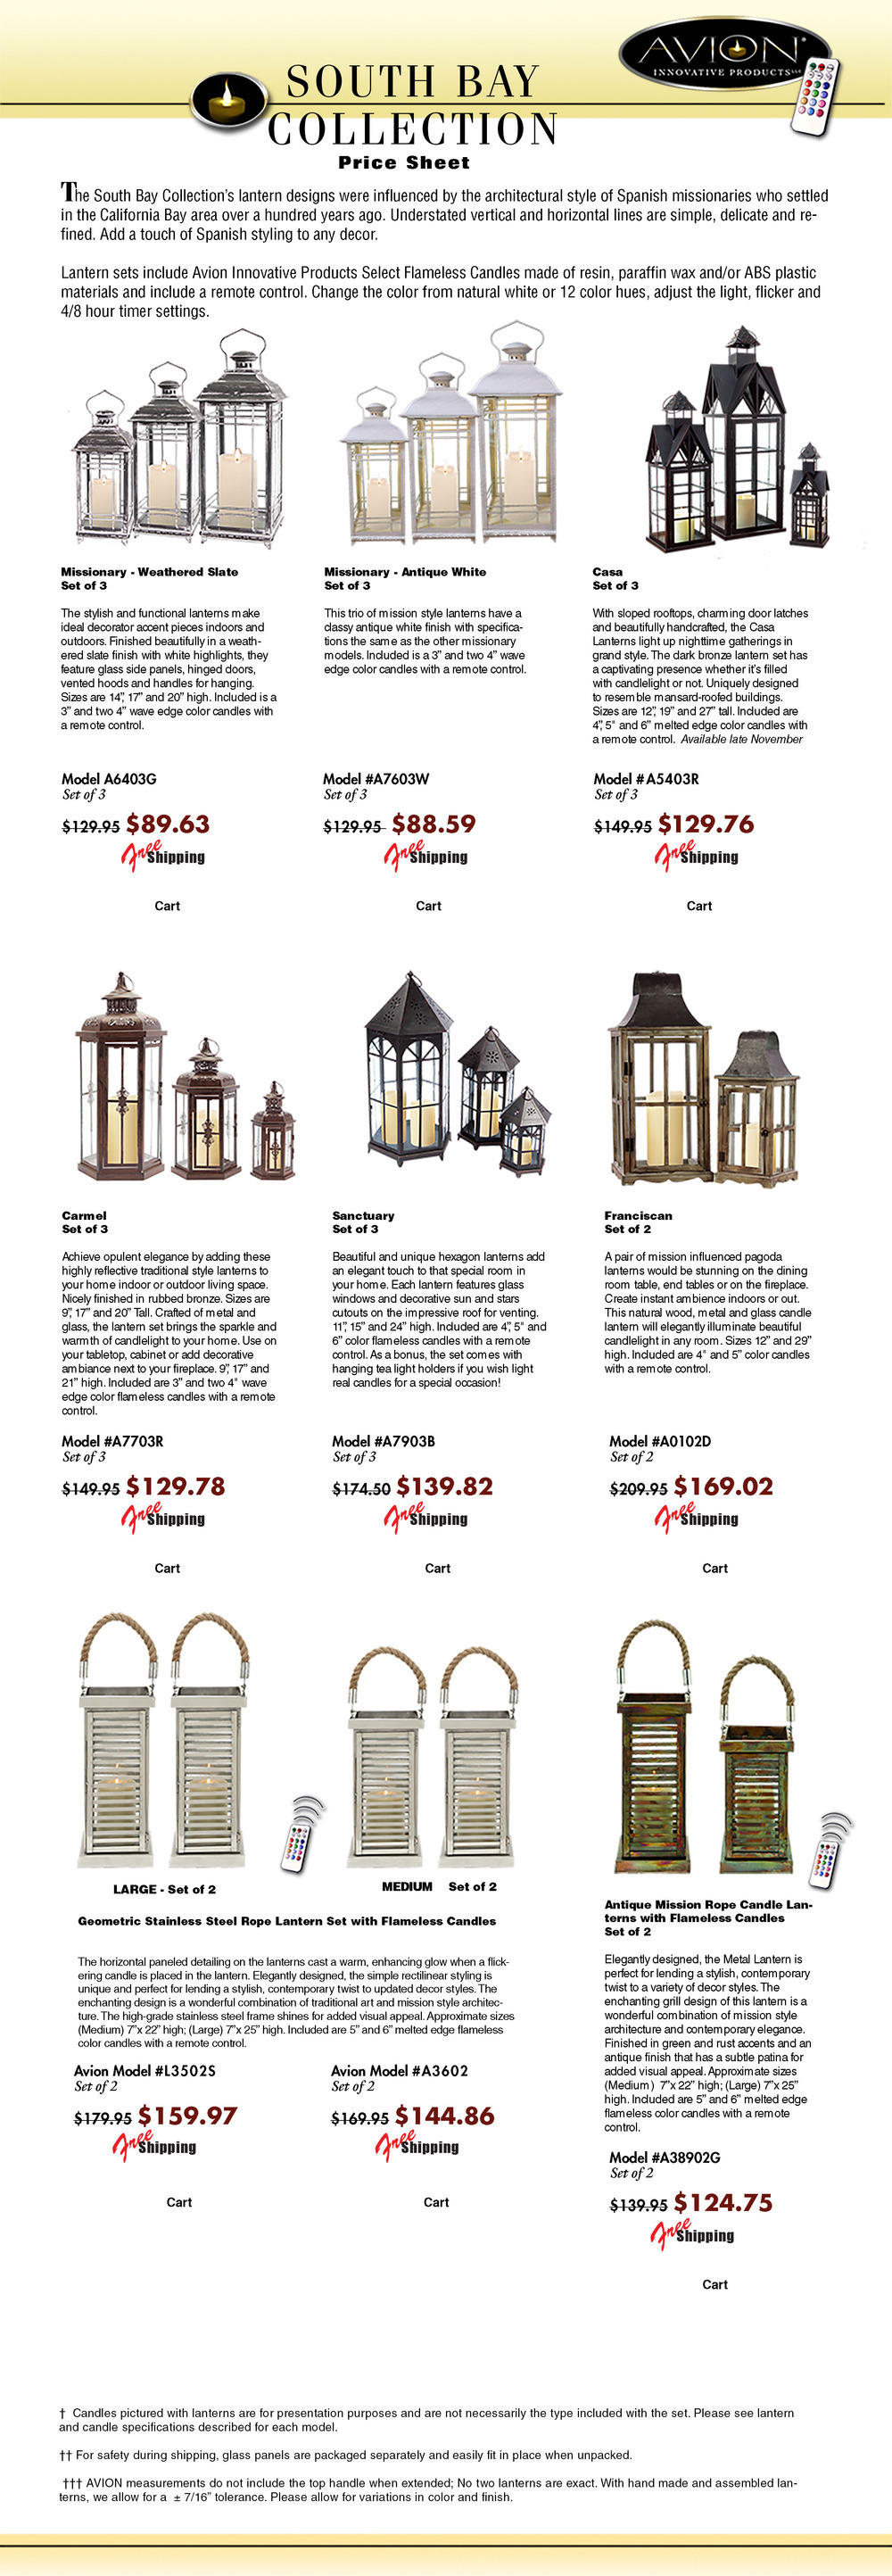 Specification sheet for South Bay avioninnovative missionary style candle lanterns. The Avion Palm Beach collection features upscale designer quality metal lanterns, wood lanterns, stainless steel lanterns from melrose, classic, traditional, modern imax, tropical urban trends, cottage style lanterns like pottery barn, gerson everlasting glow motion flame LED candles; color candles from mooncandles, Kohree, like luminara, candle lamps plus wax. The package price list includes LED battery operated candles, flameless candles, a remote control timer, candle change colors 12 different colors by remote